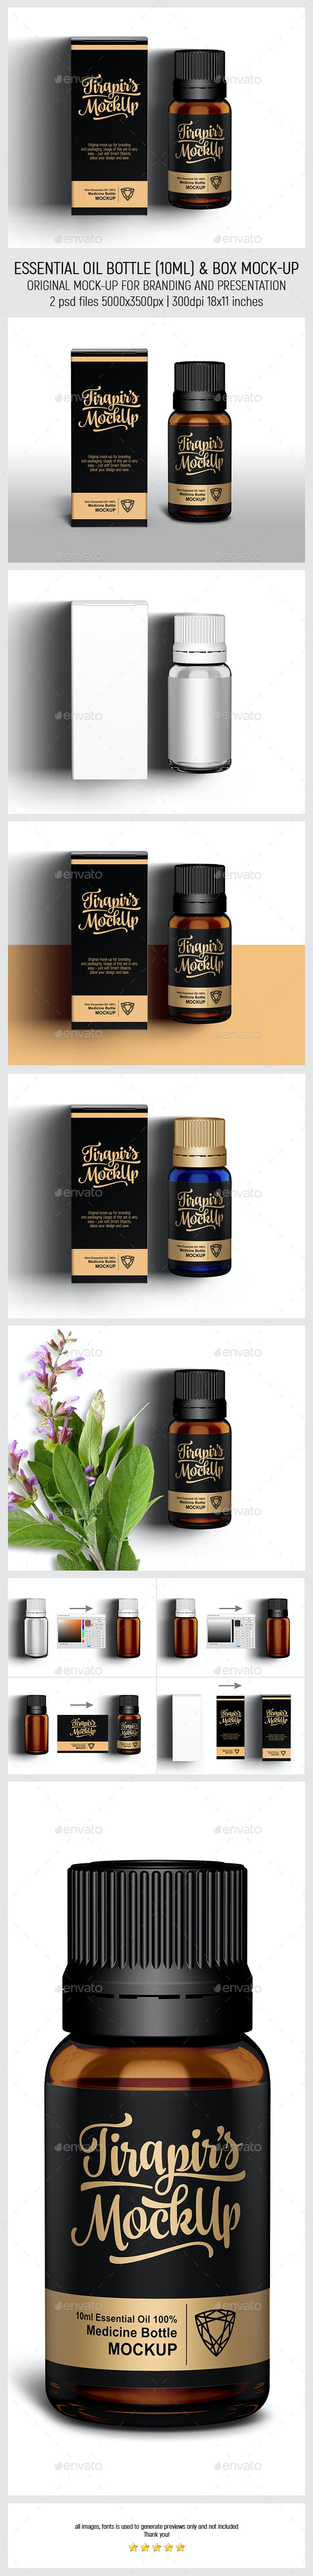 Essential Oil Bottle (10ml) & Box Mock-Up - Miscellaneous Packaging